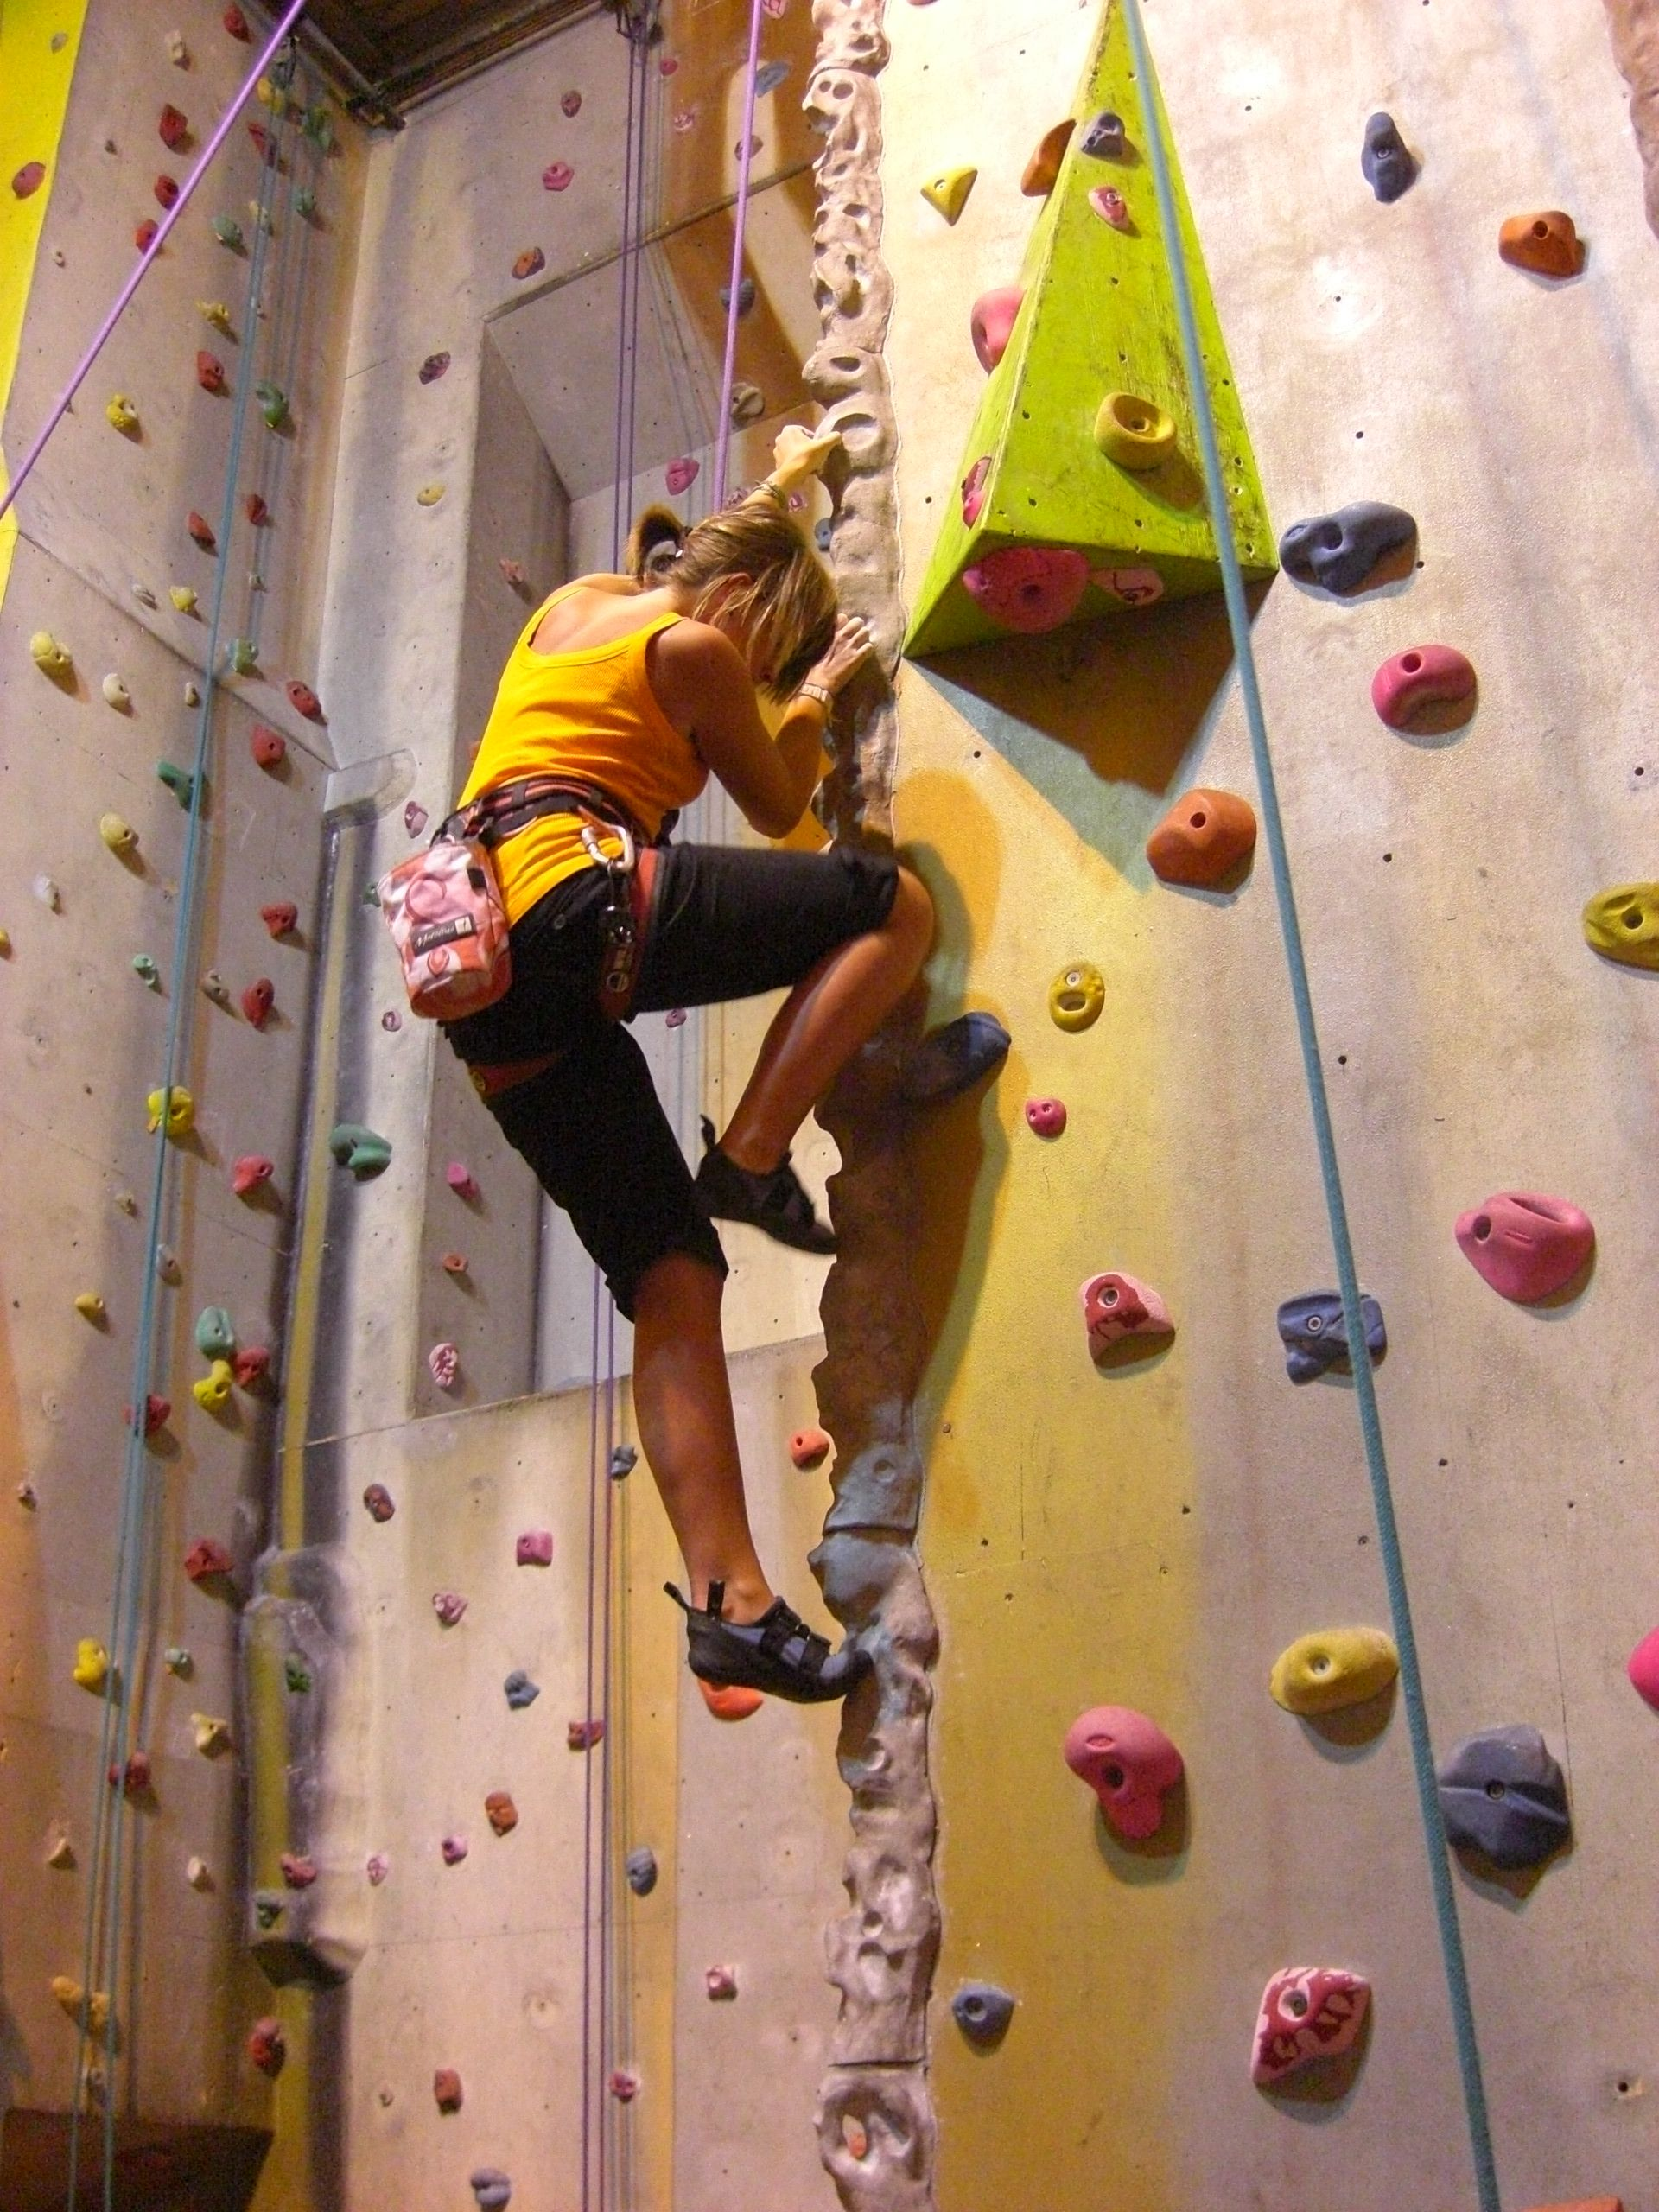 Its possible for me to rock climb indoors of course